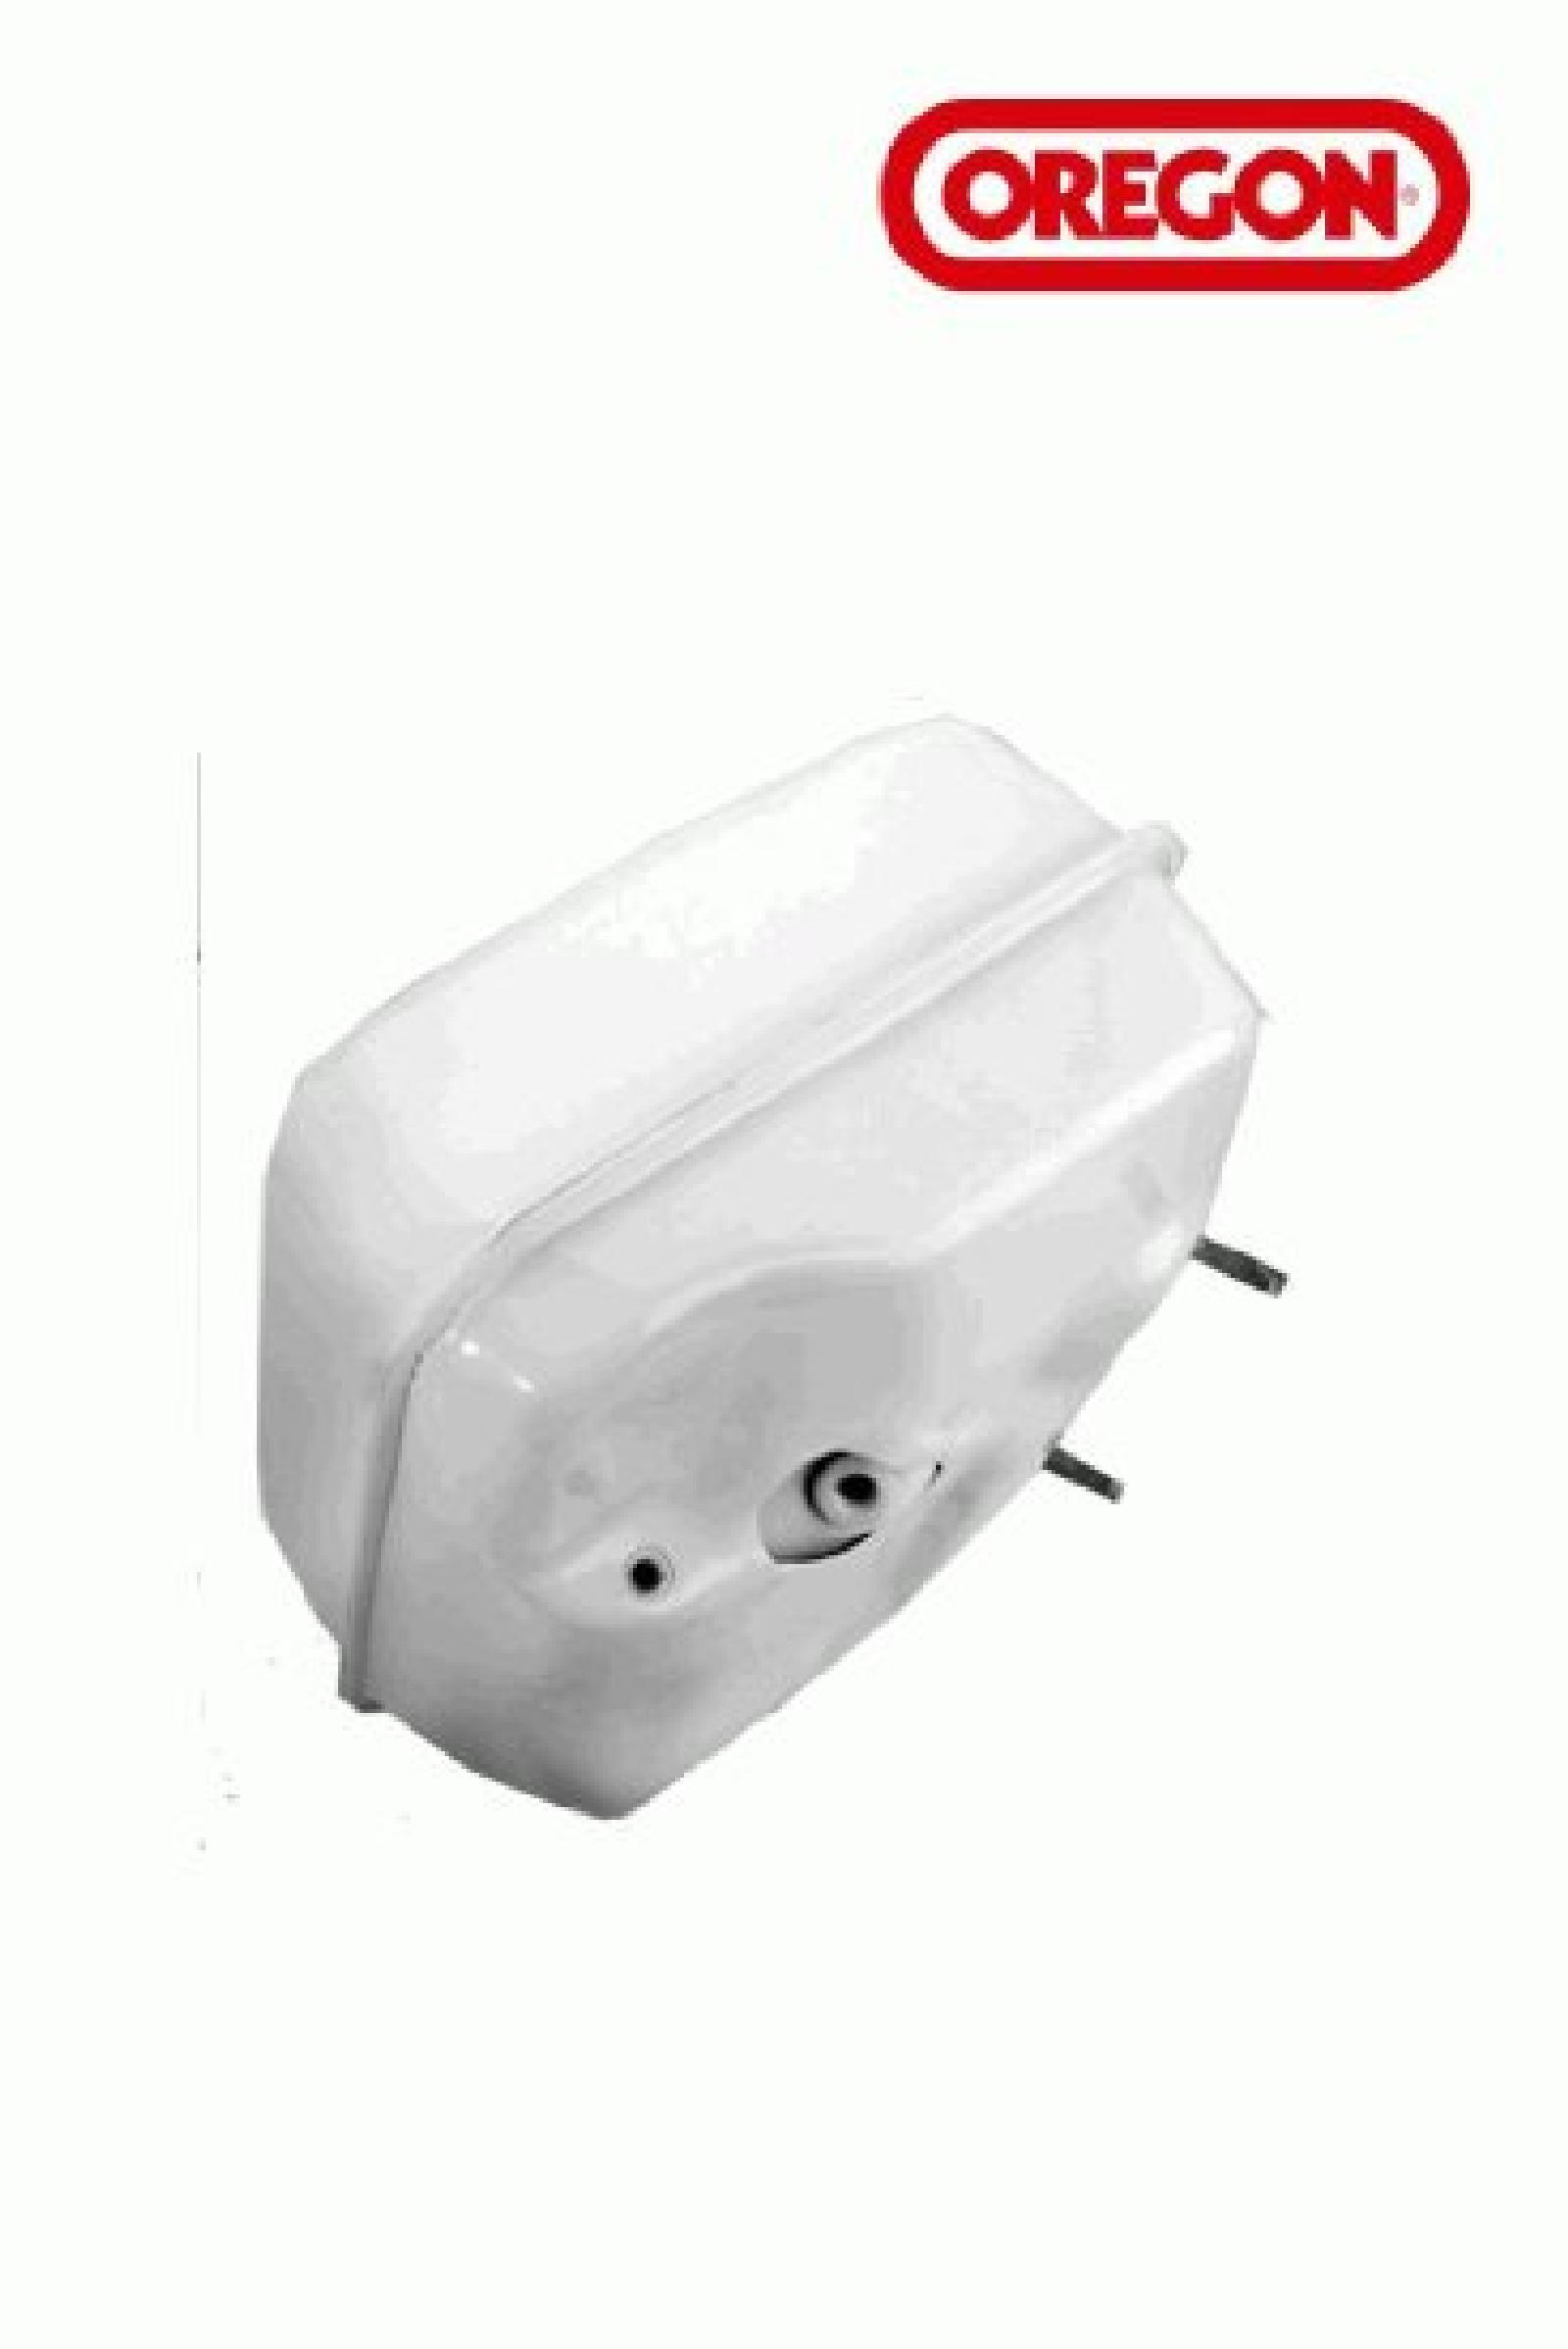 FUEL TANK, HONDA GX340, G part# 07-602 by Oregon